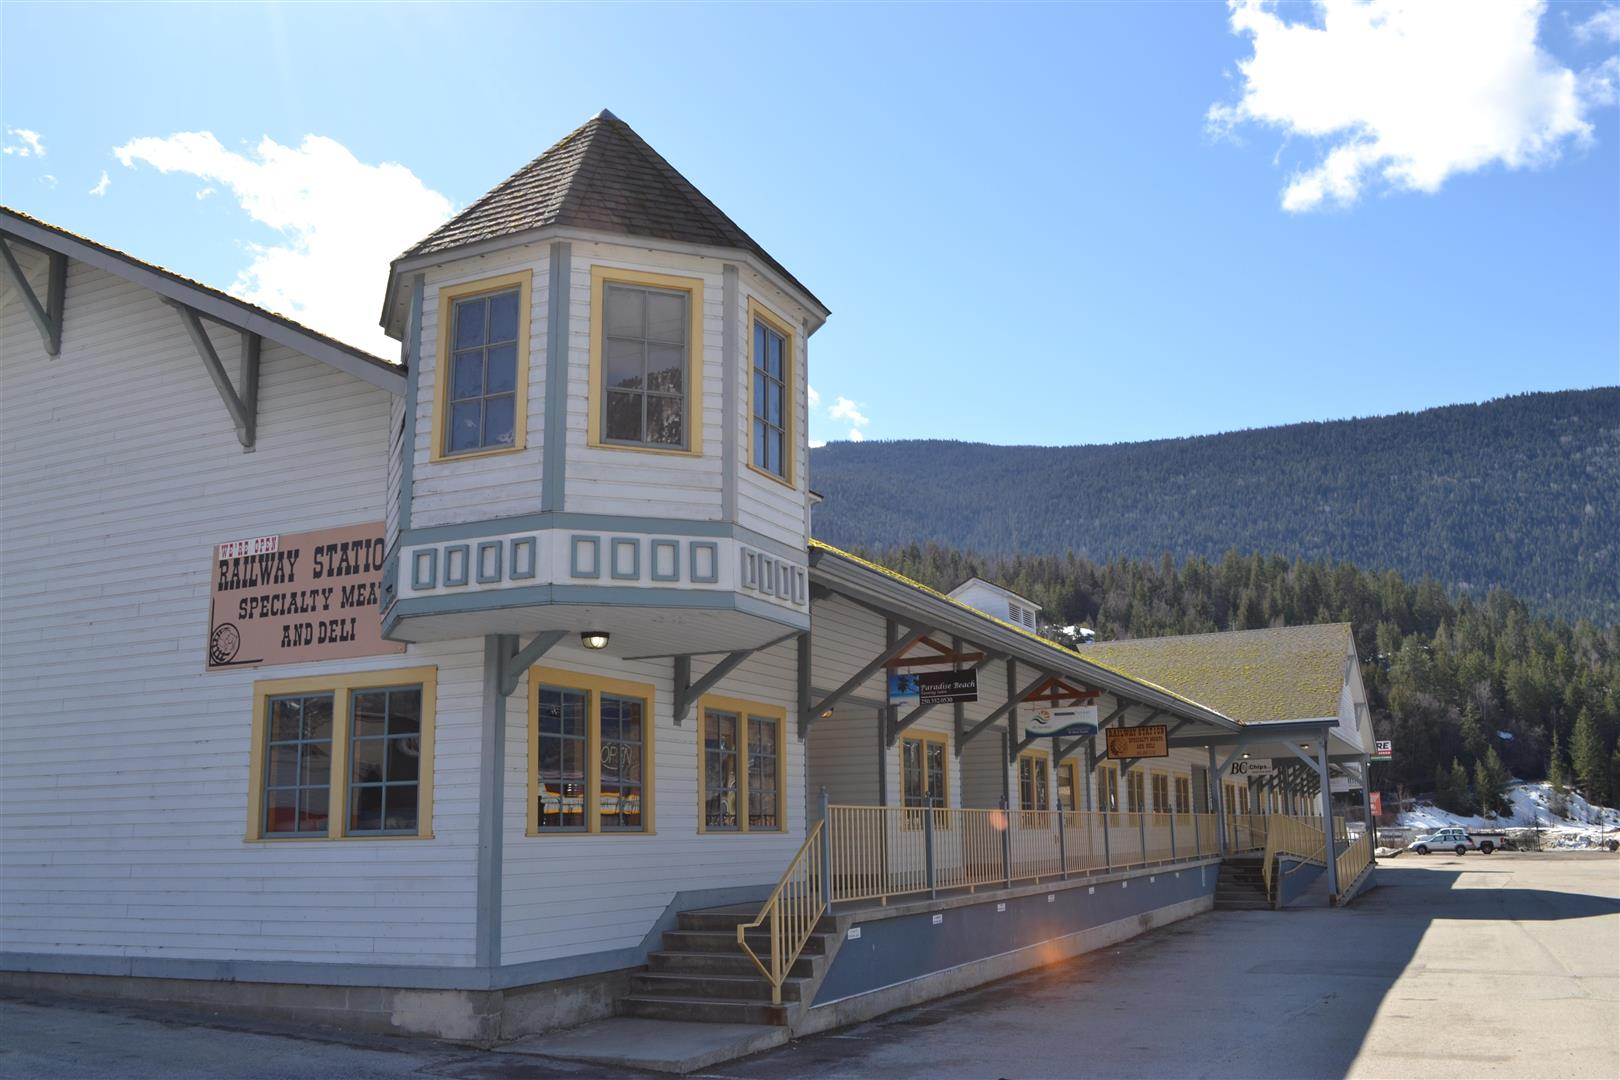 image of Nelson Heritage Railway Station